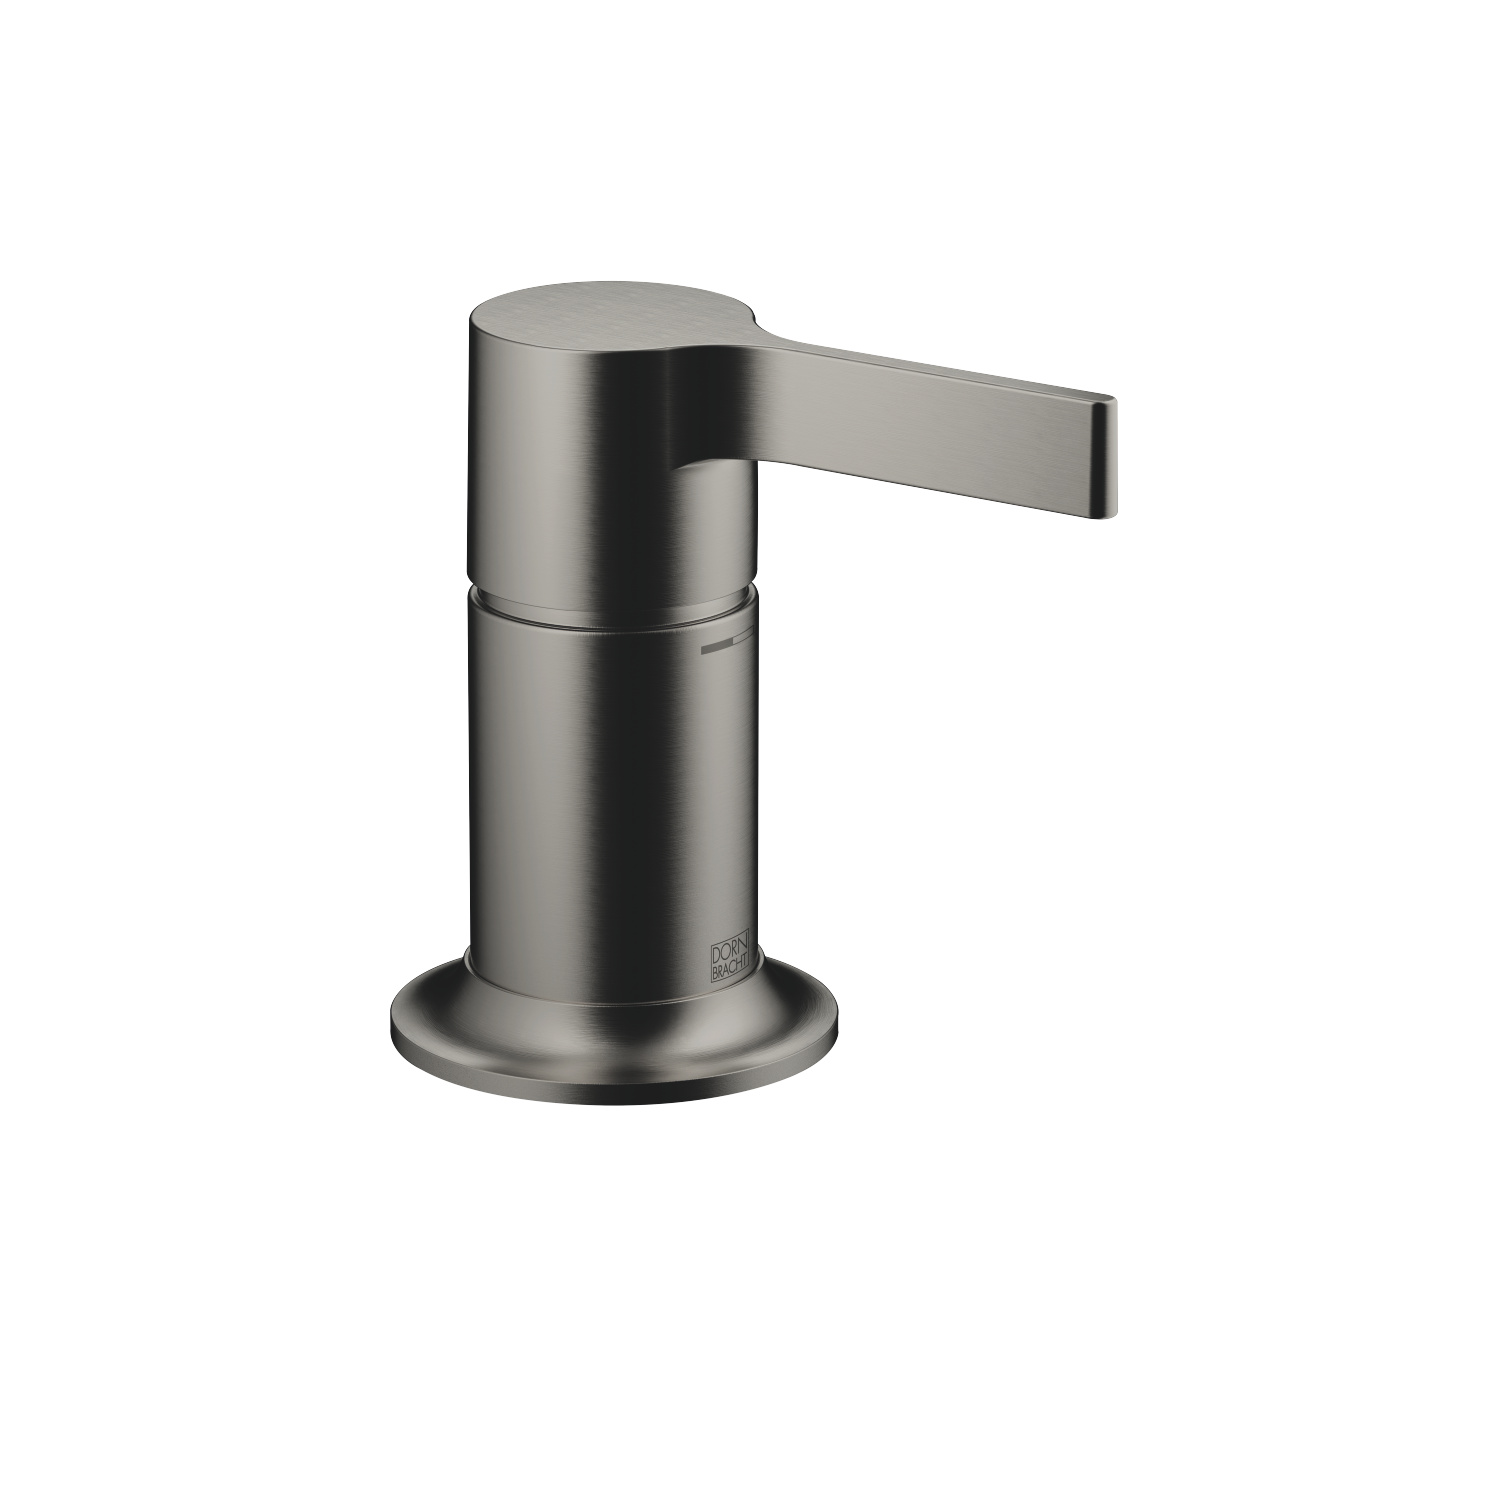 Single-lever bath mixer for bath rim or tile edge installation - Dark Platinum matt - 29 300 809-99